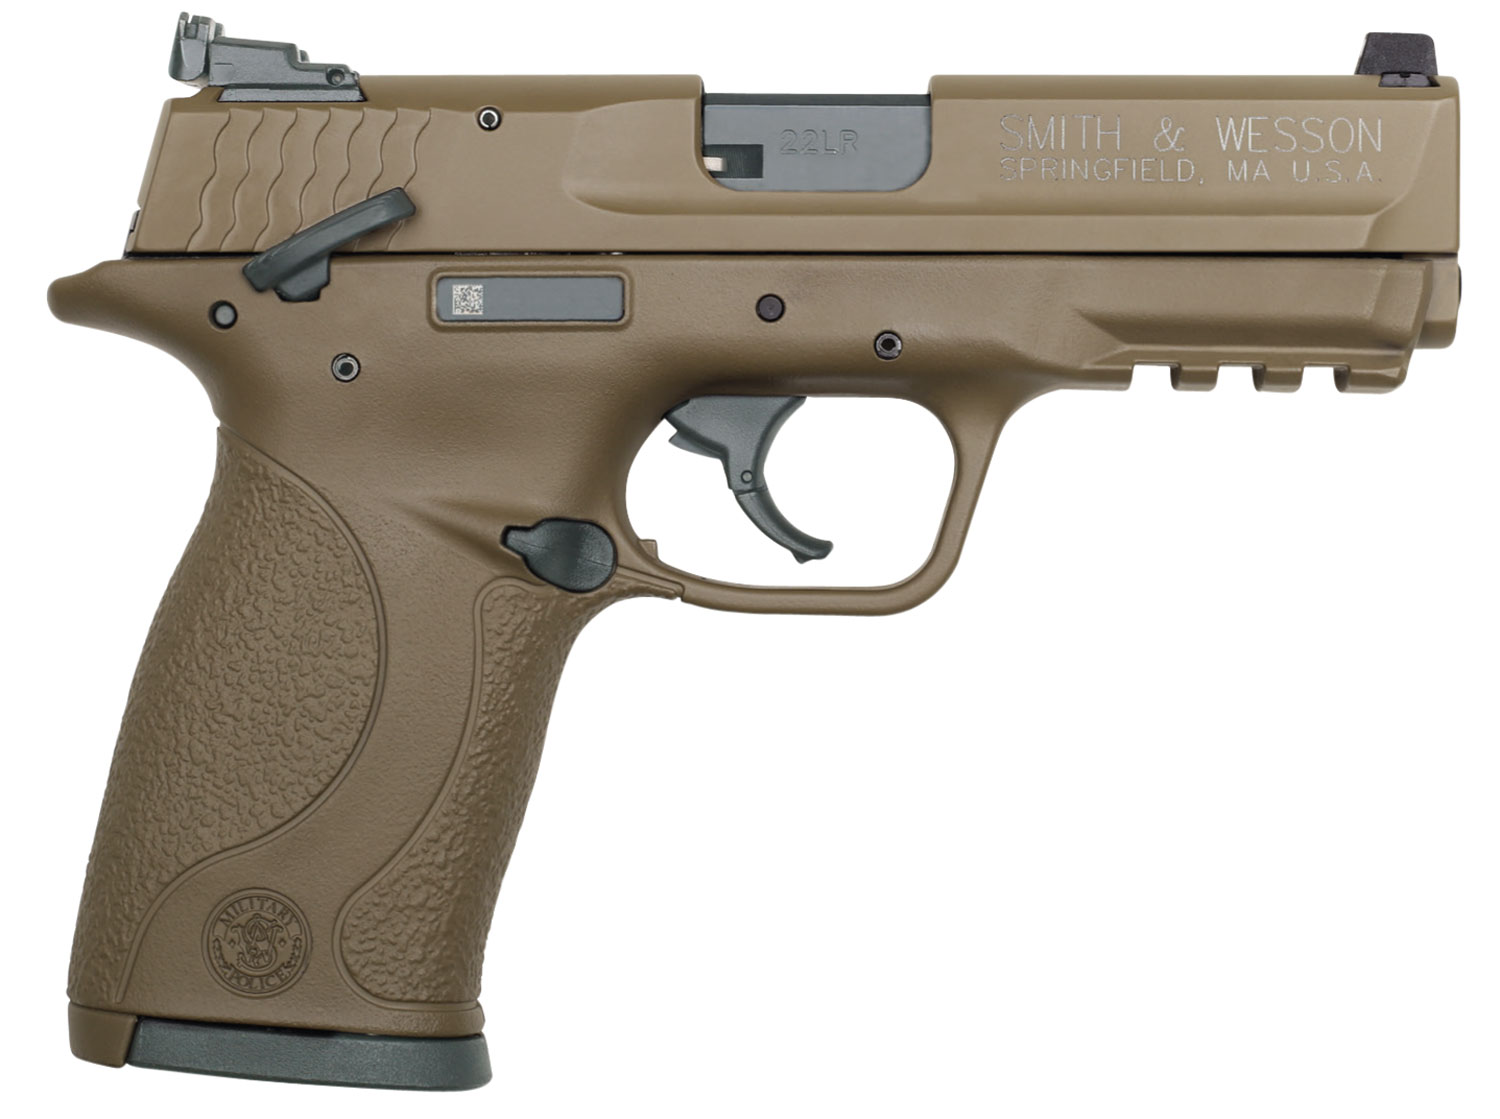 Smith & Wesson 12570 M&P 22 Compact 22 Long Rifle (LR) Single 3.6